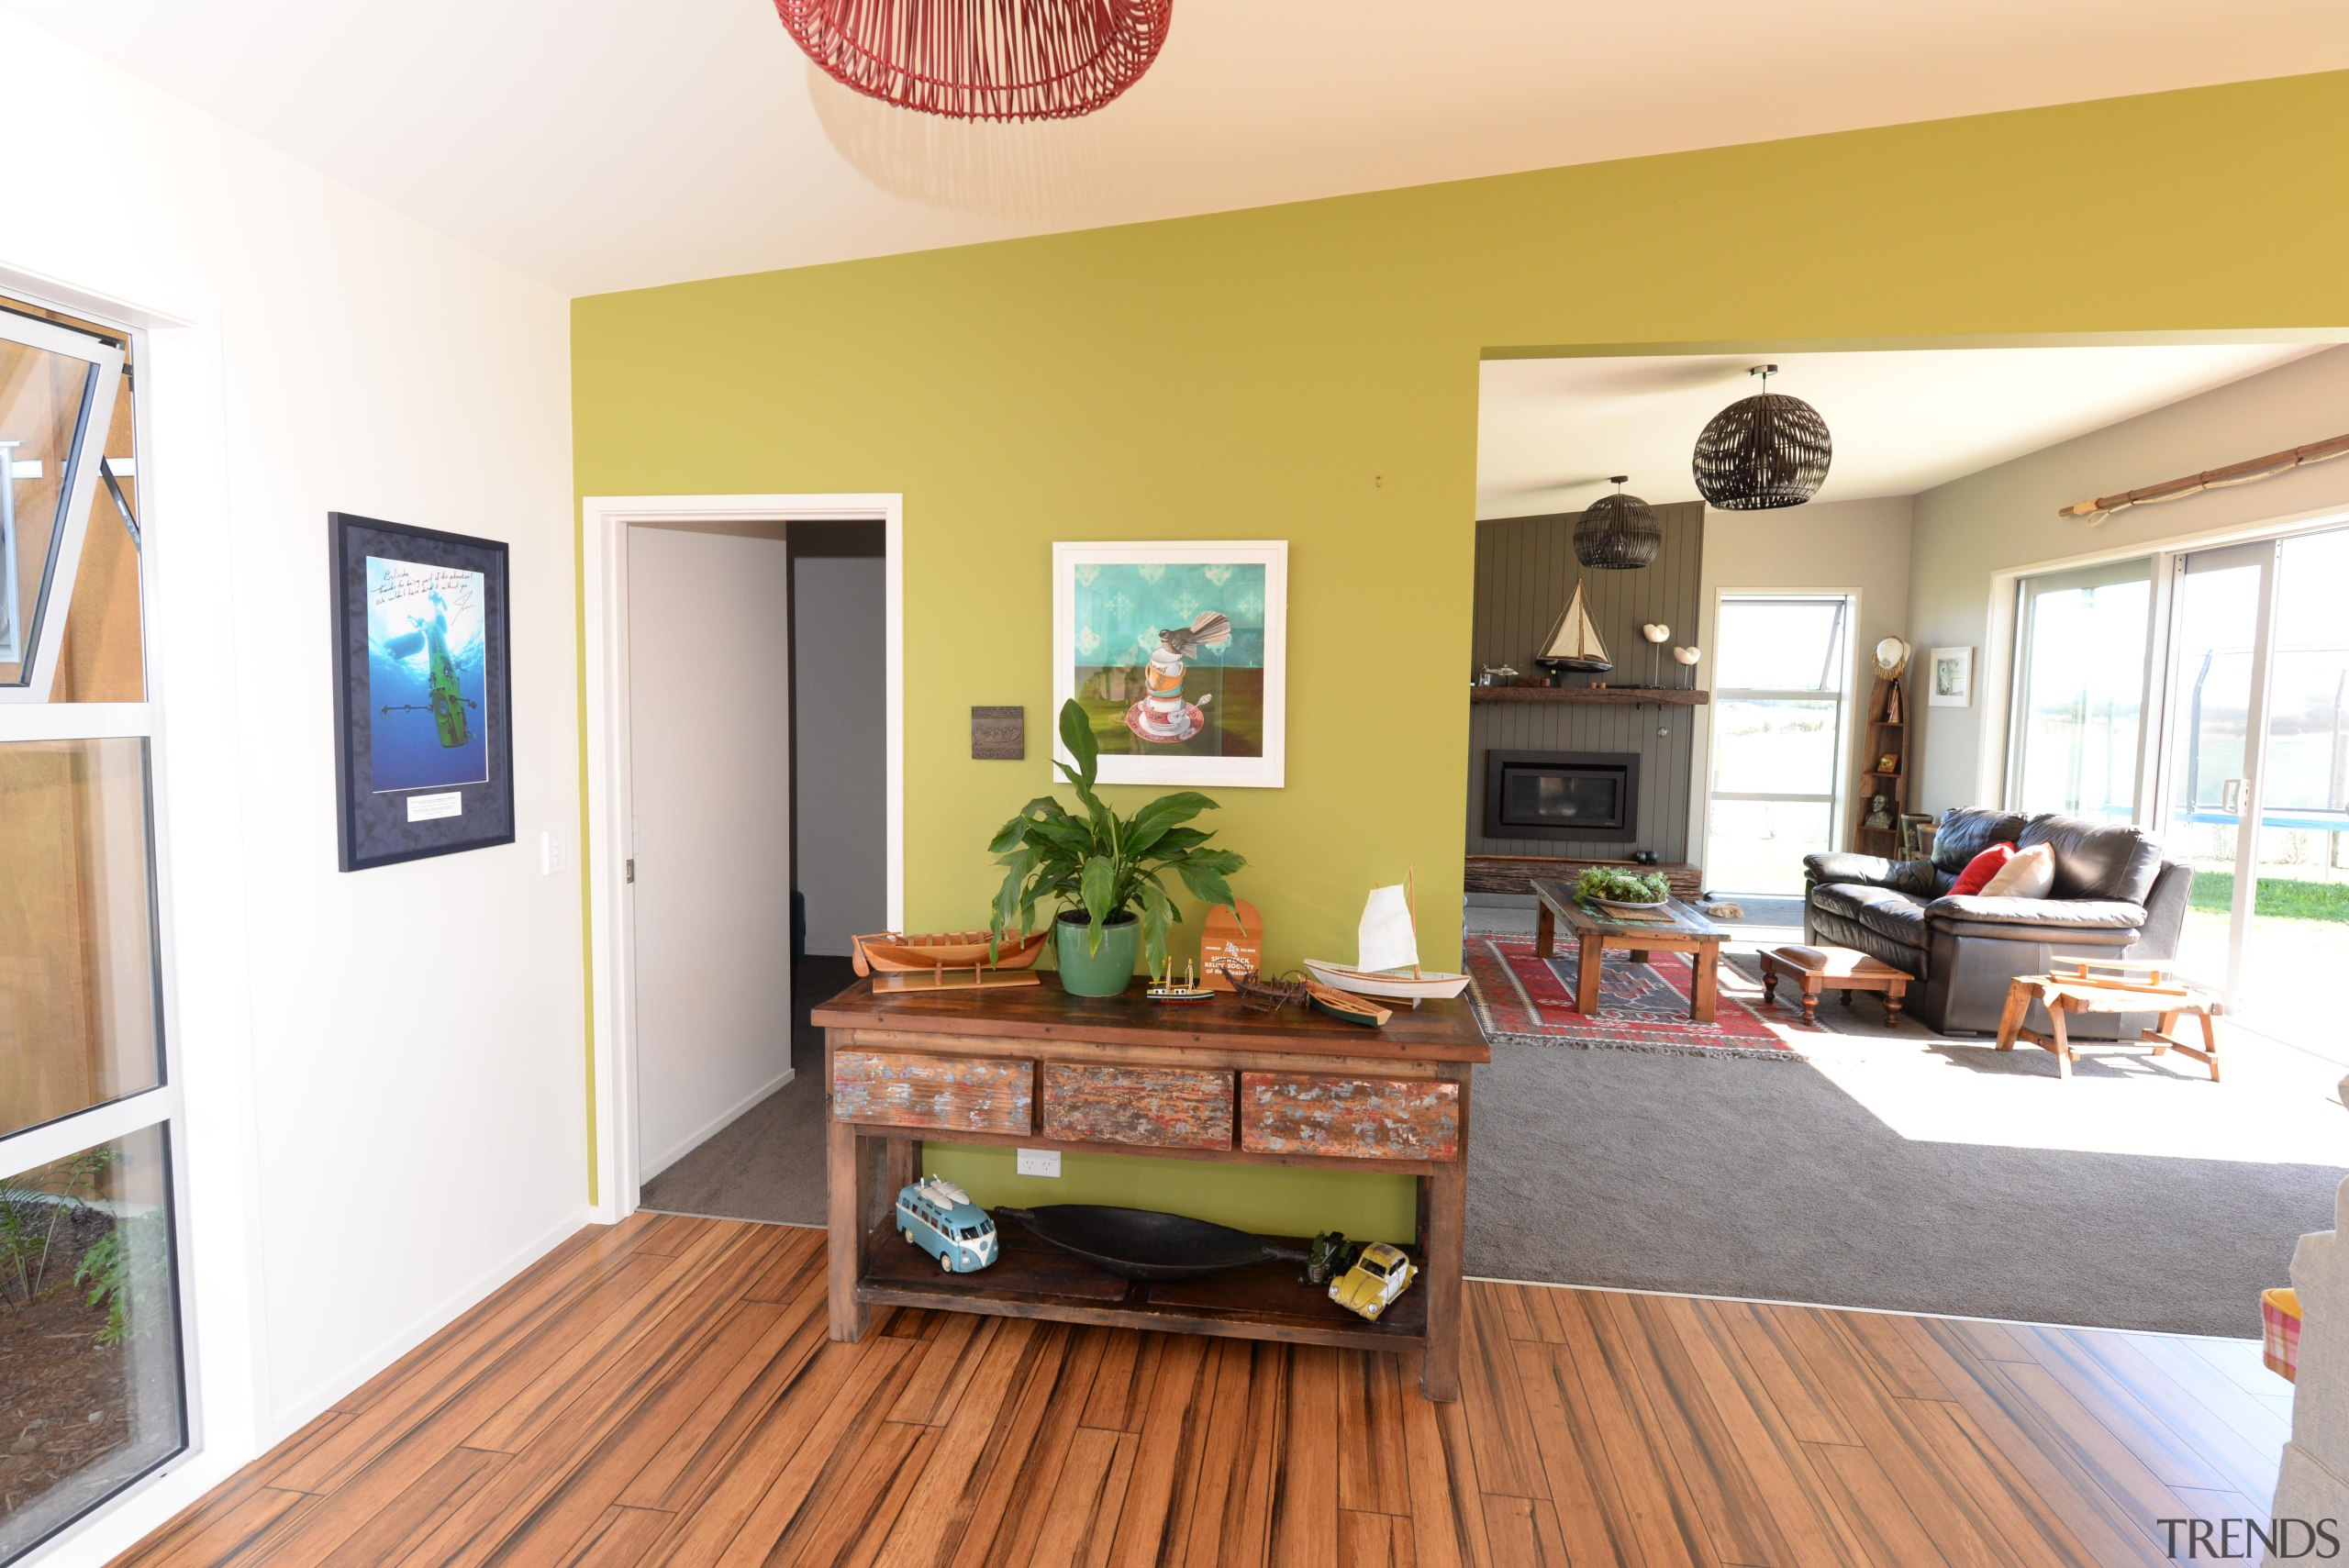 Since the early 1980's, we have successfully been floor, flooring, hardwood, home, house, interior design, living room, property, real estate, room, wood, wood flooring, white, orange